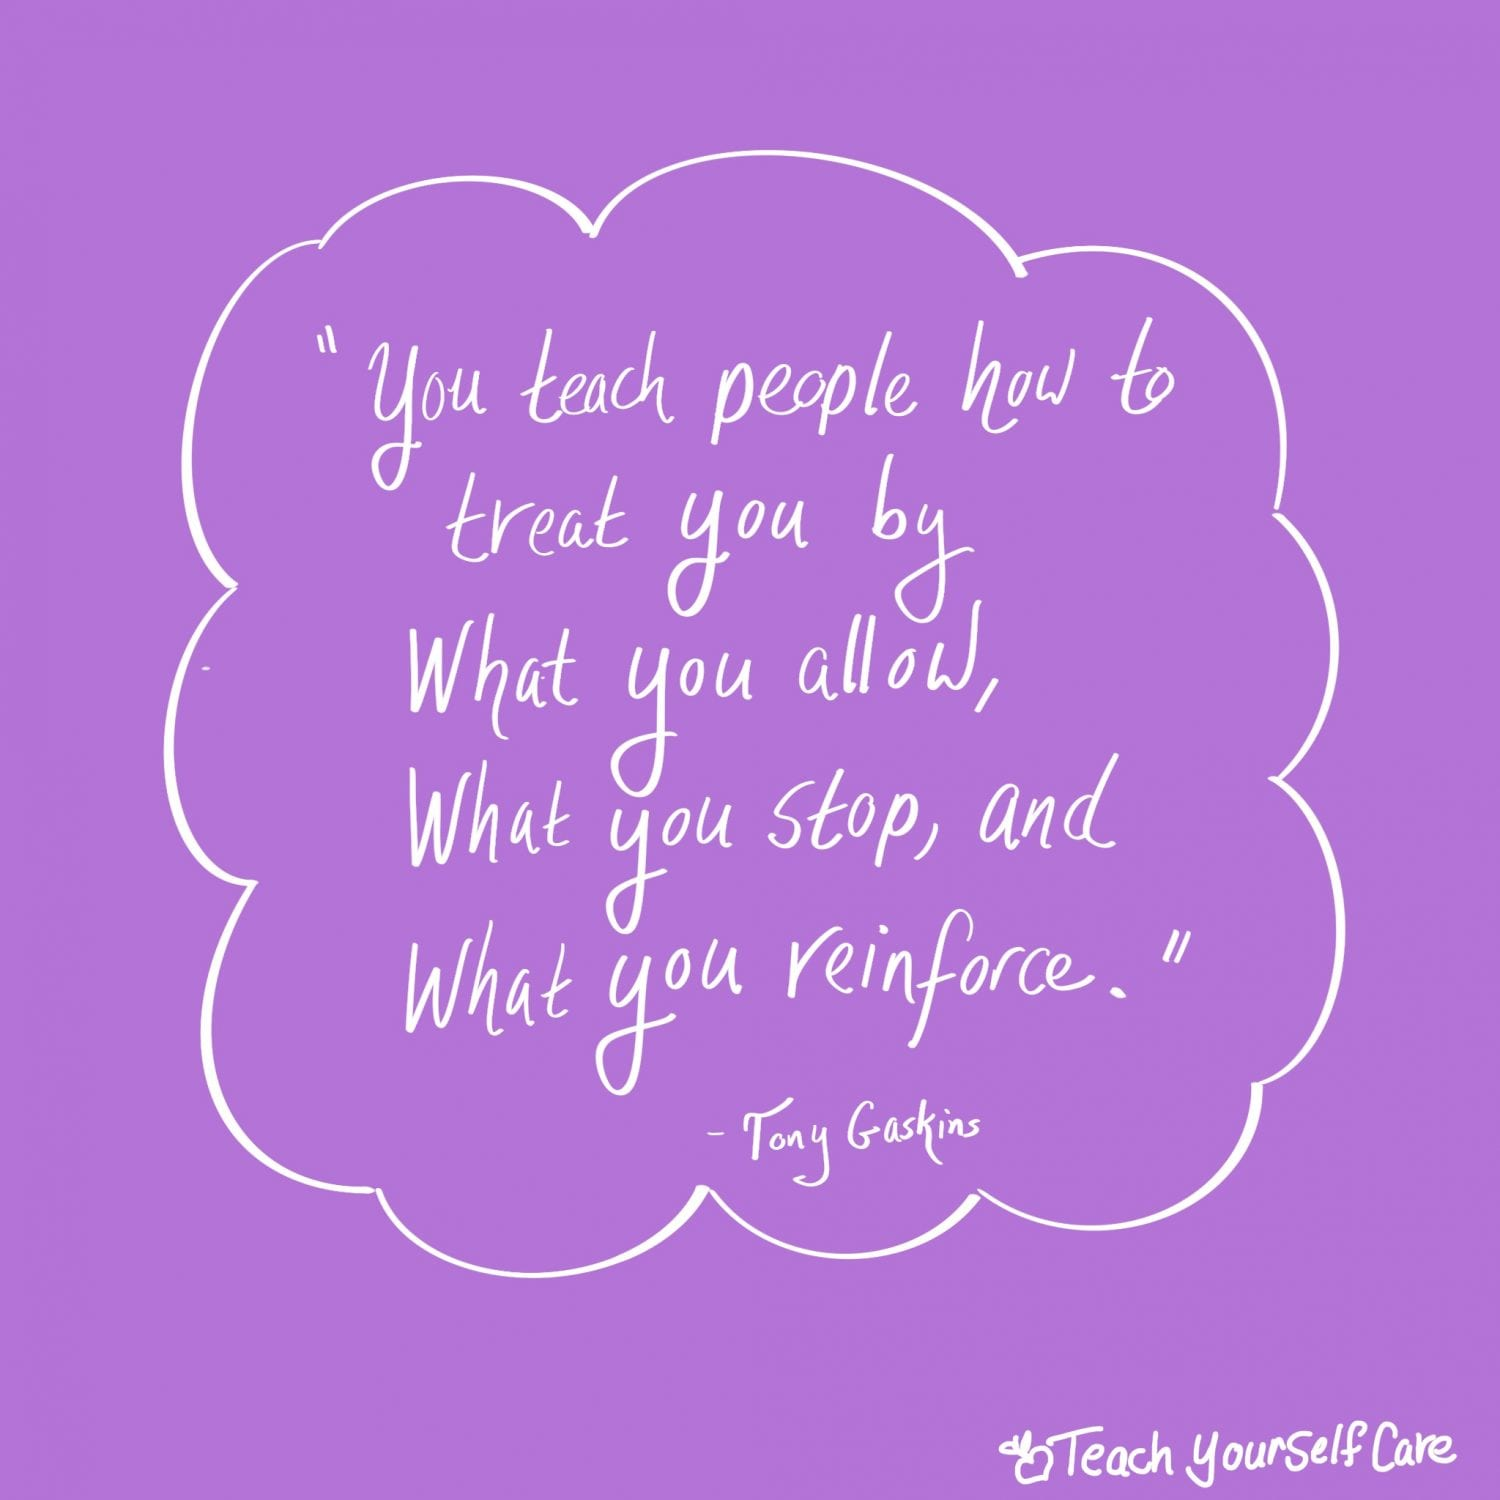 You teach people how to treat youby what you allow, what you stop and what you reinforce